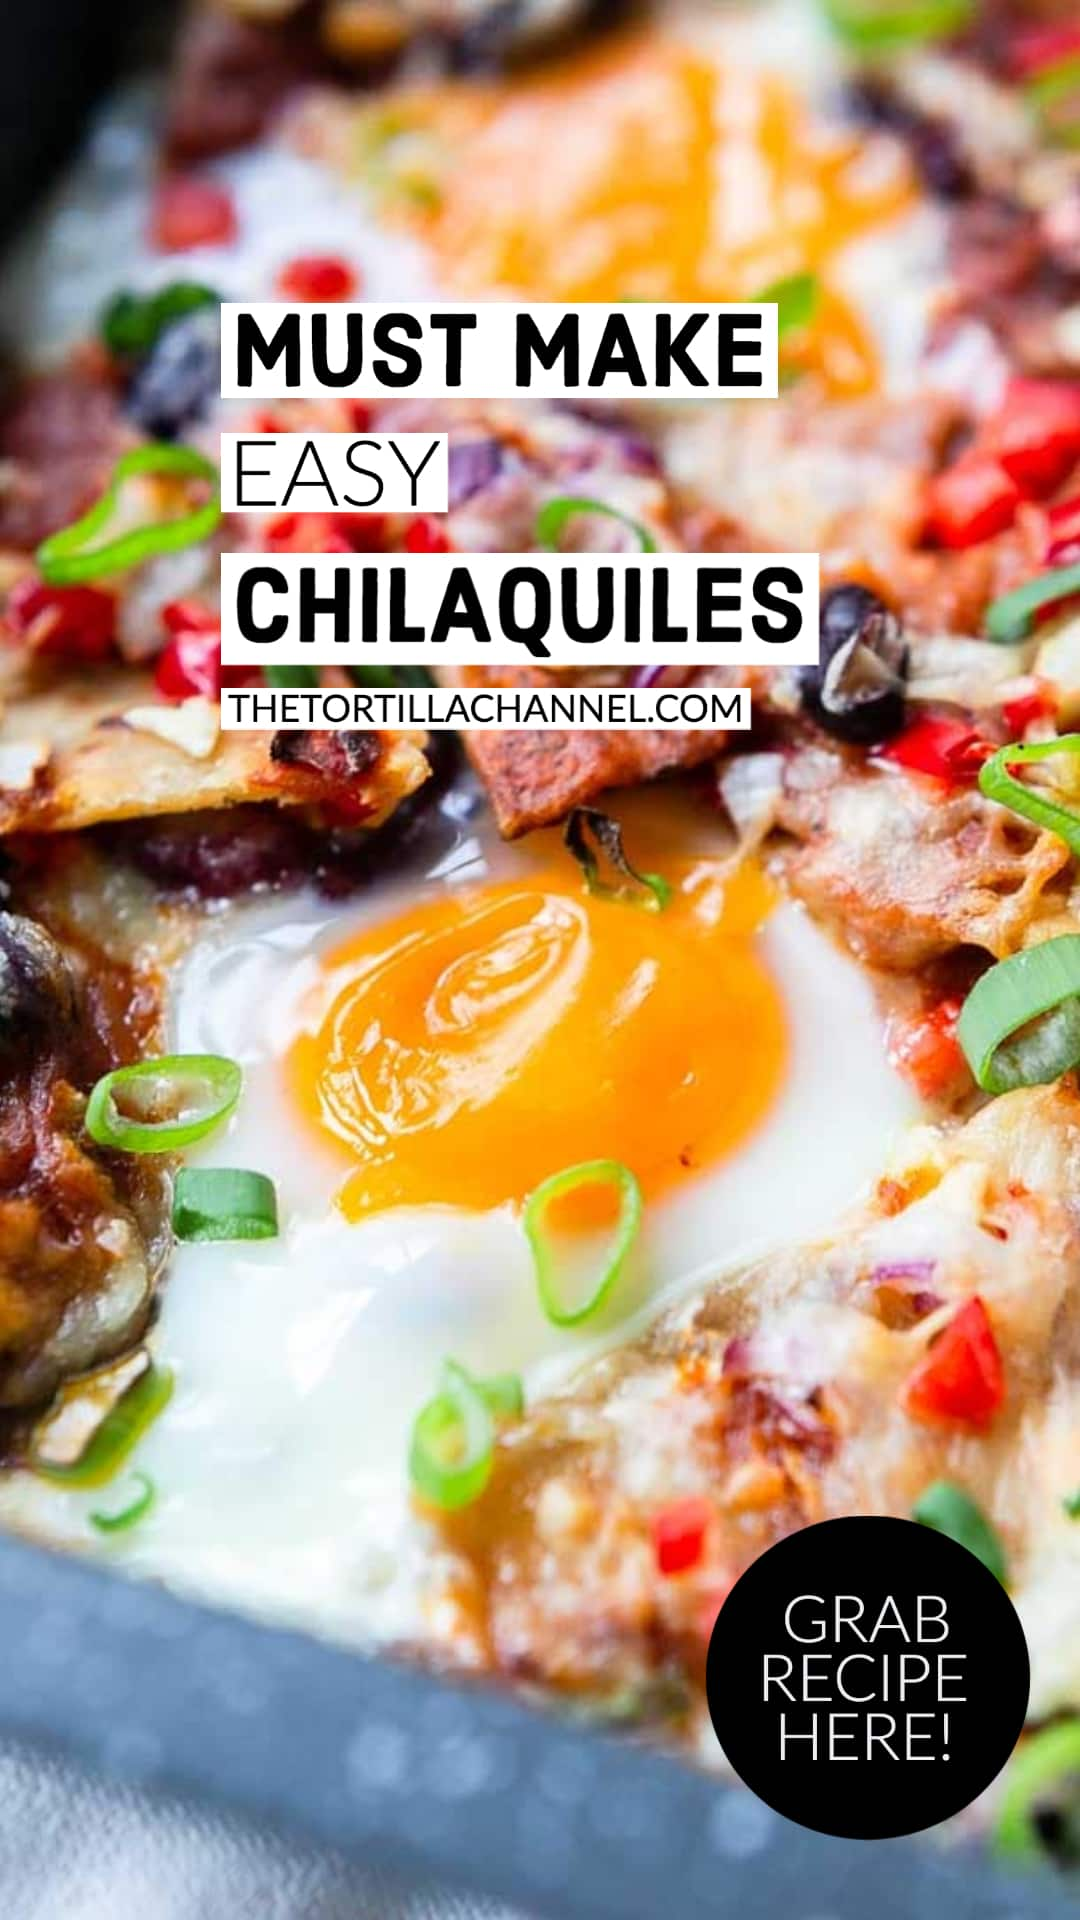 Chilaquiles is great breakfast or lunch recipe made with fried tortillas, veggies and eggs? Easy to make so visit thetortillachannel.com for the full recipe #thetortillachannel #chilaquiles #chilaquilesrecipe #tortillarecipe